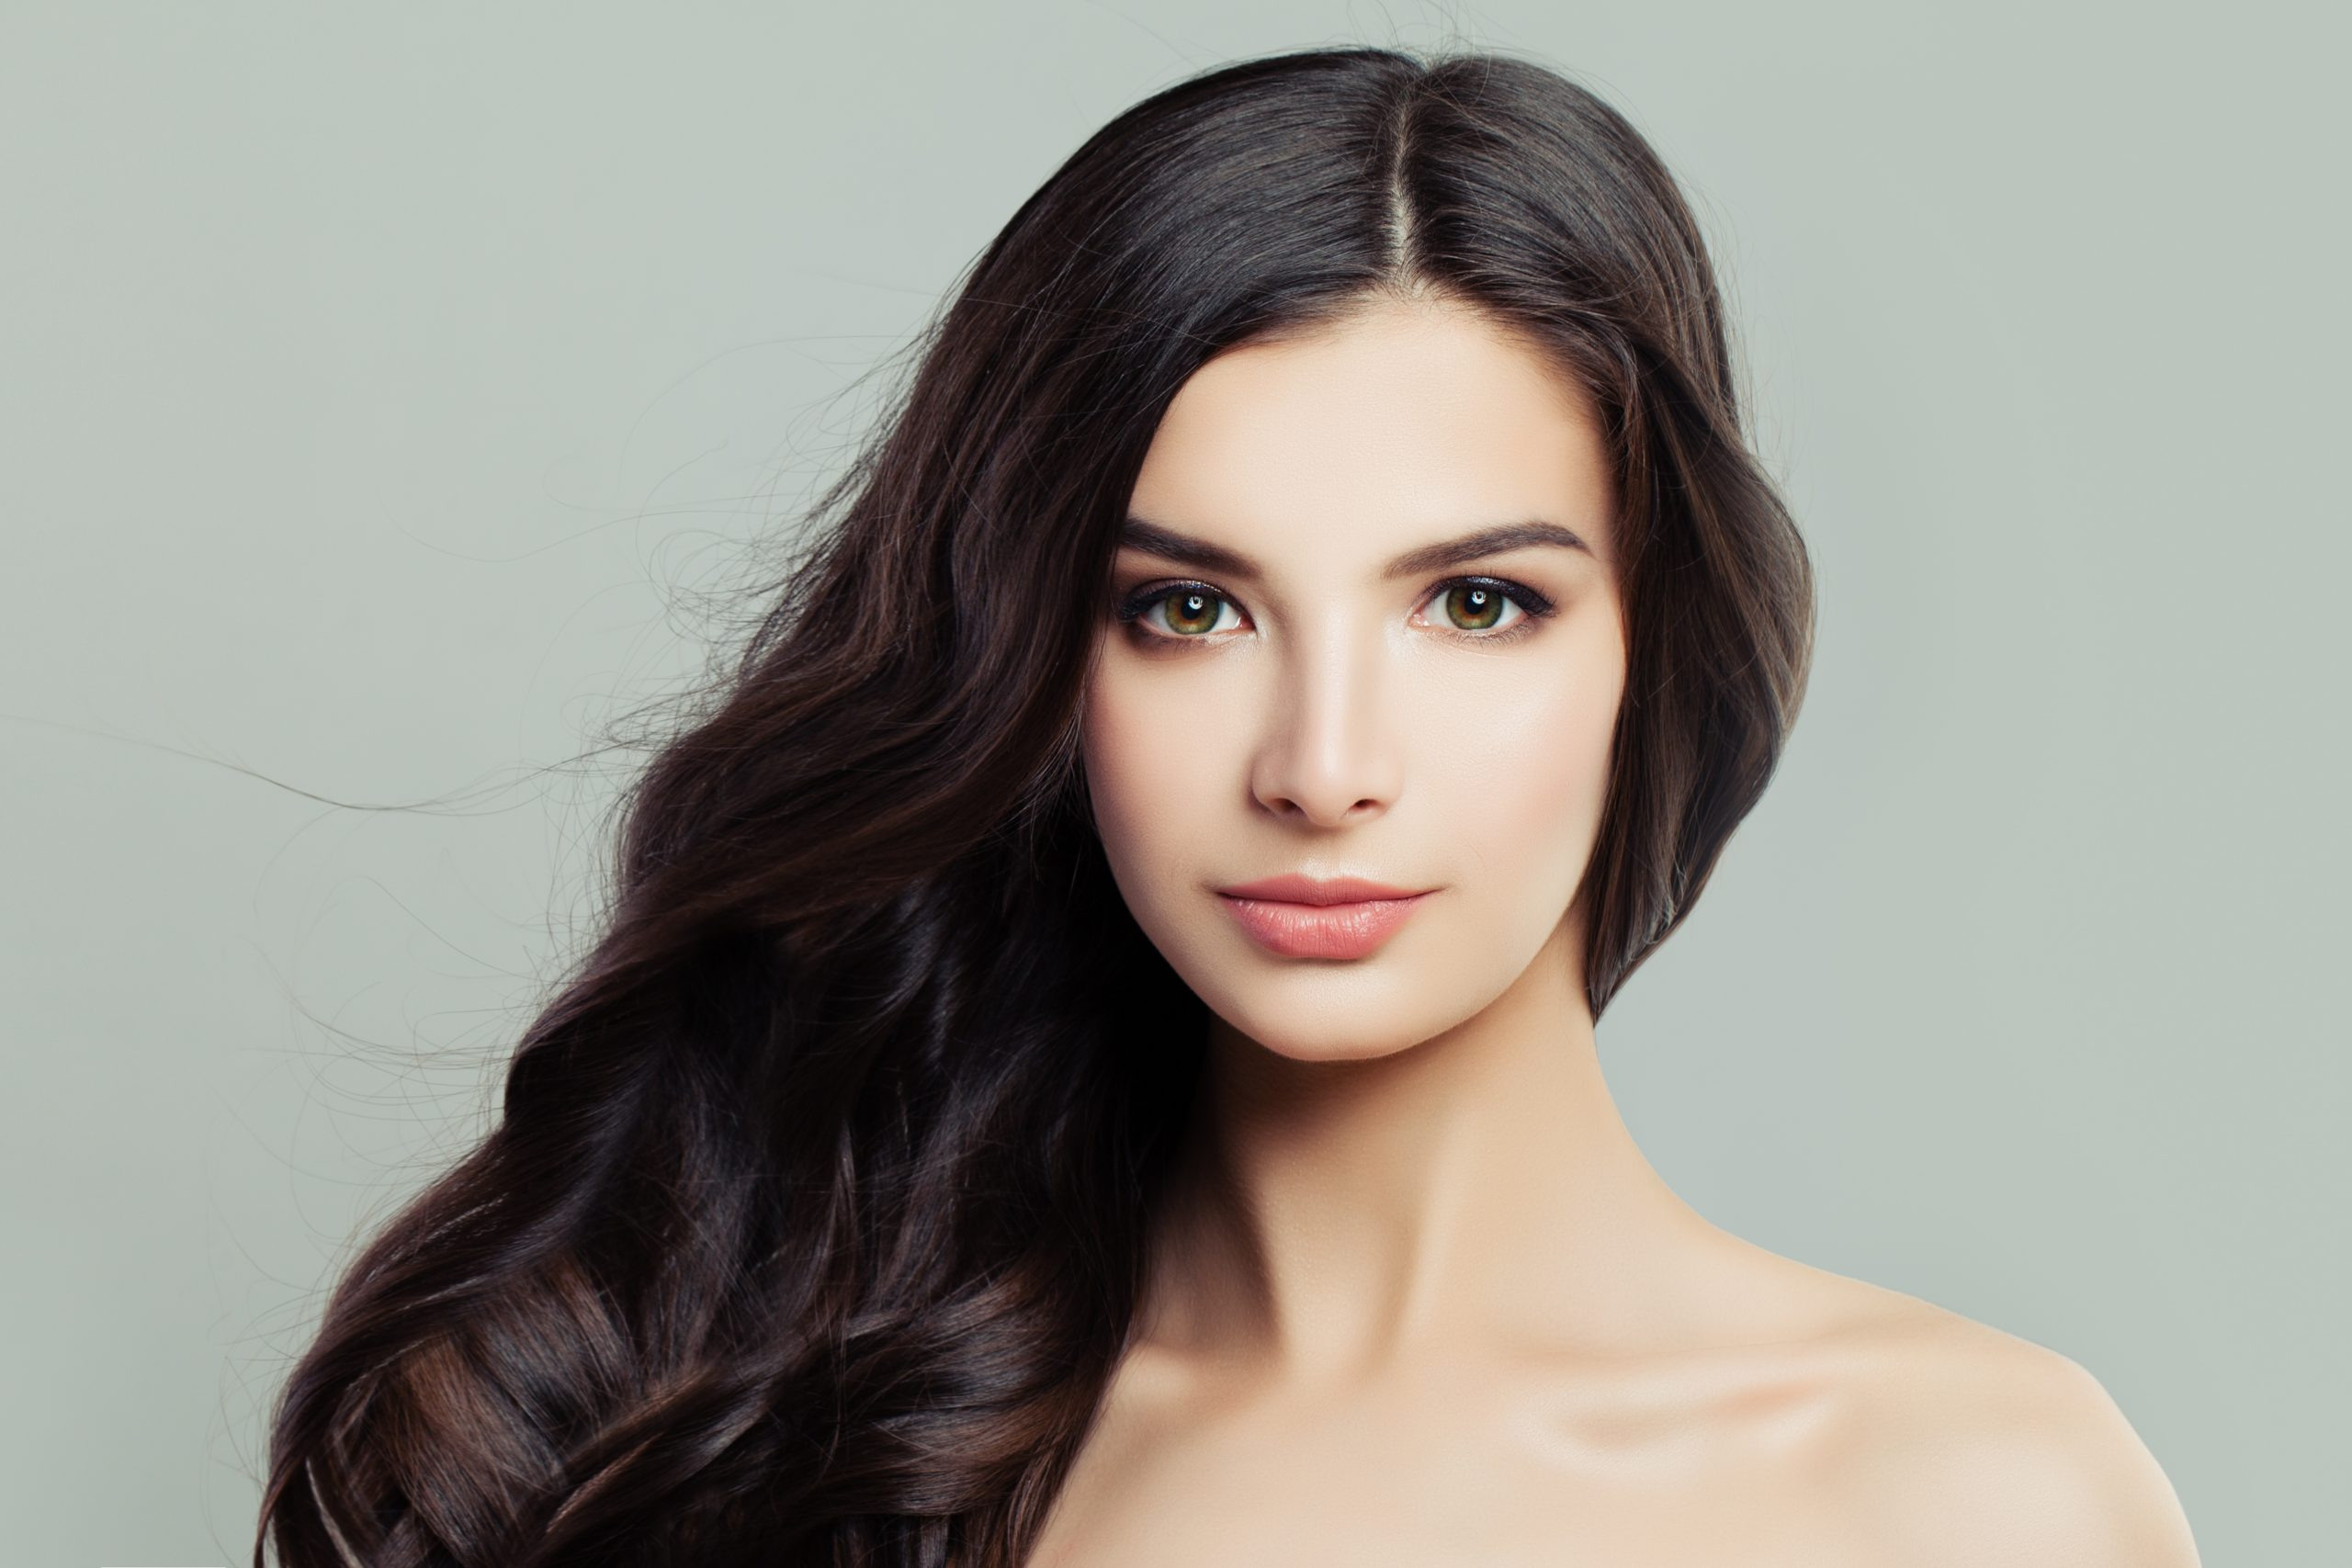 Beautiful young woman with long brown hairdo and clear skin. Facial treatment, cosmetology, beauty, hair care and spa